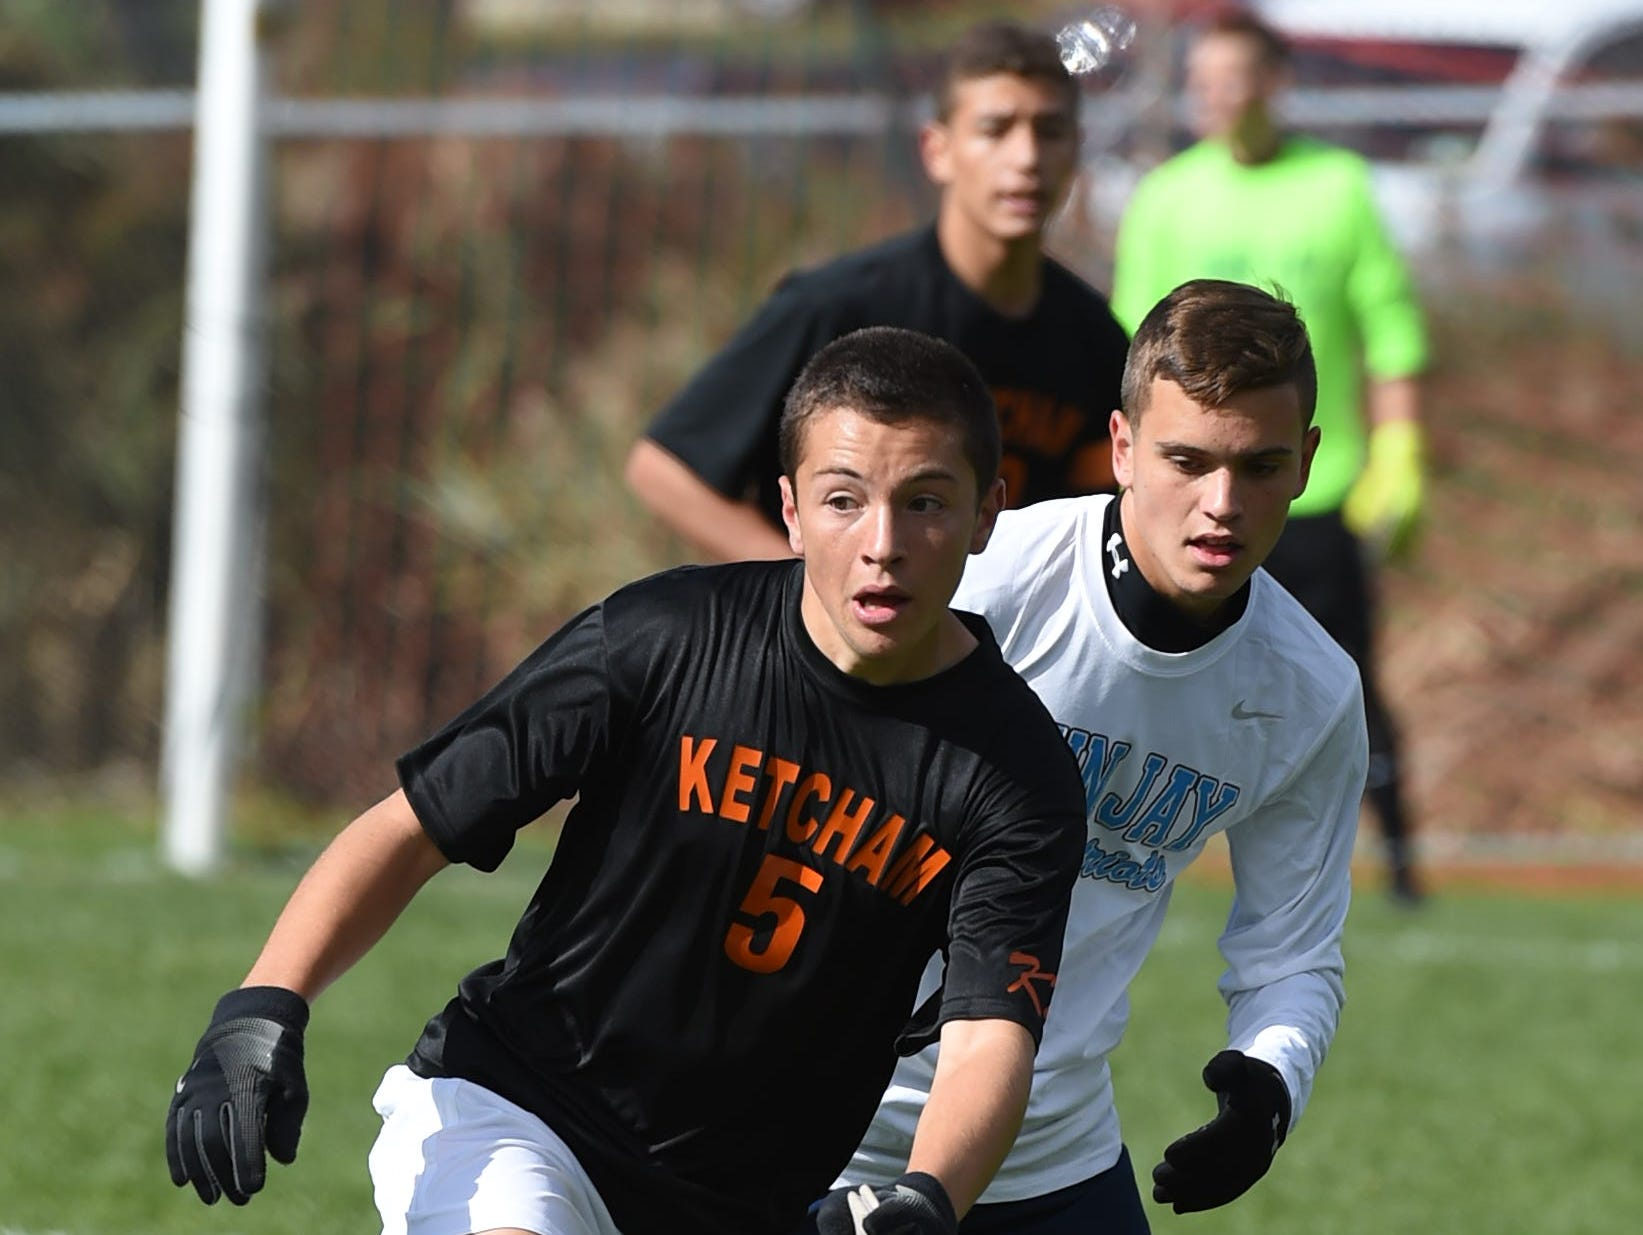 Ketcham's Eddie May looks for a teammate to pass the ball to as John Jay's Mike Ciardullo covers him during Saturday's game in Wappingers Falls.